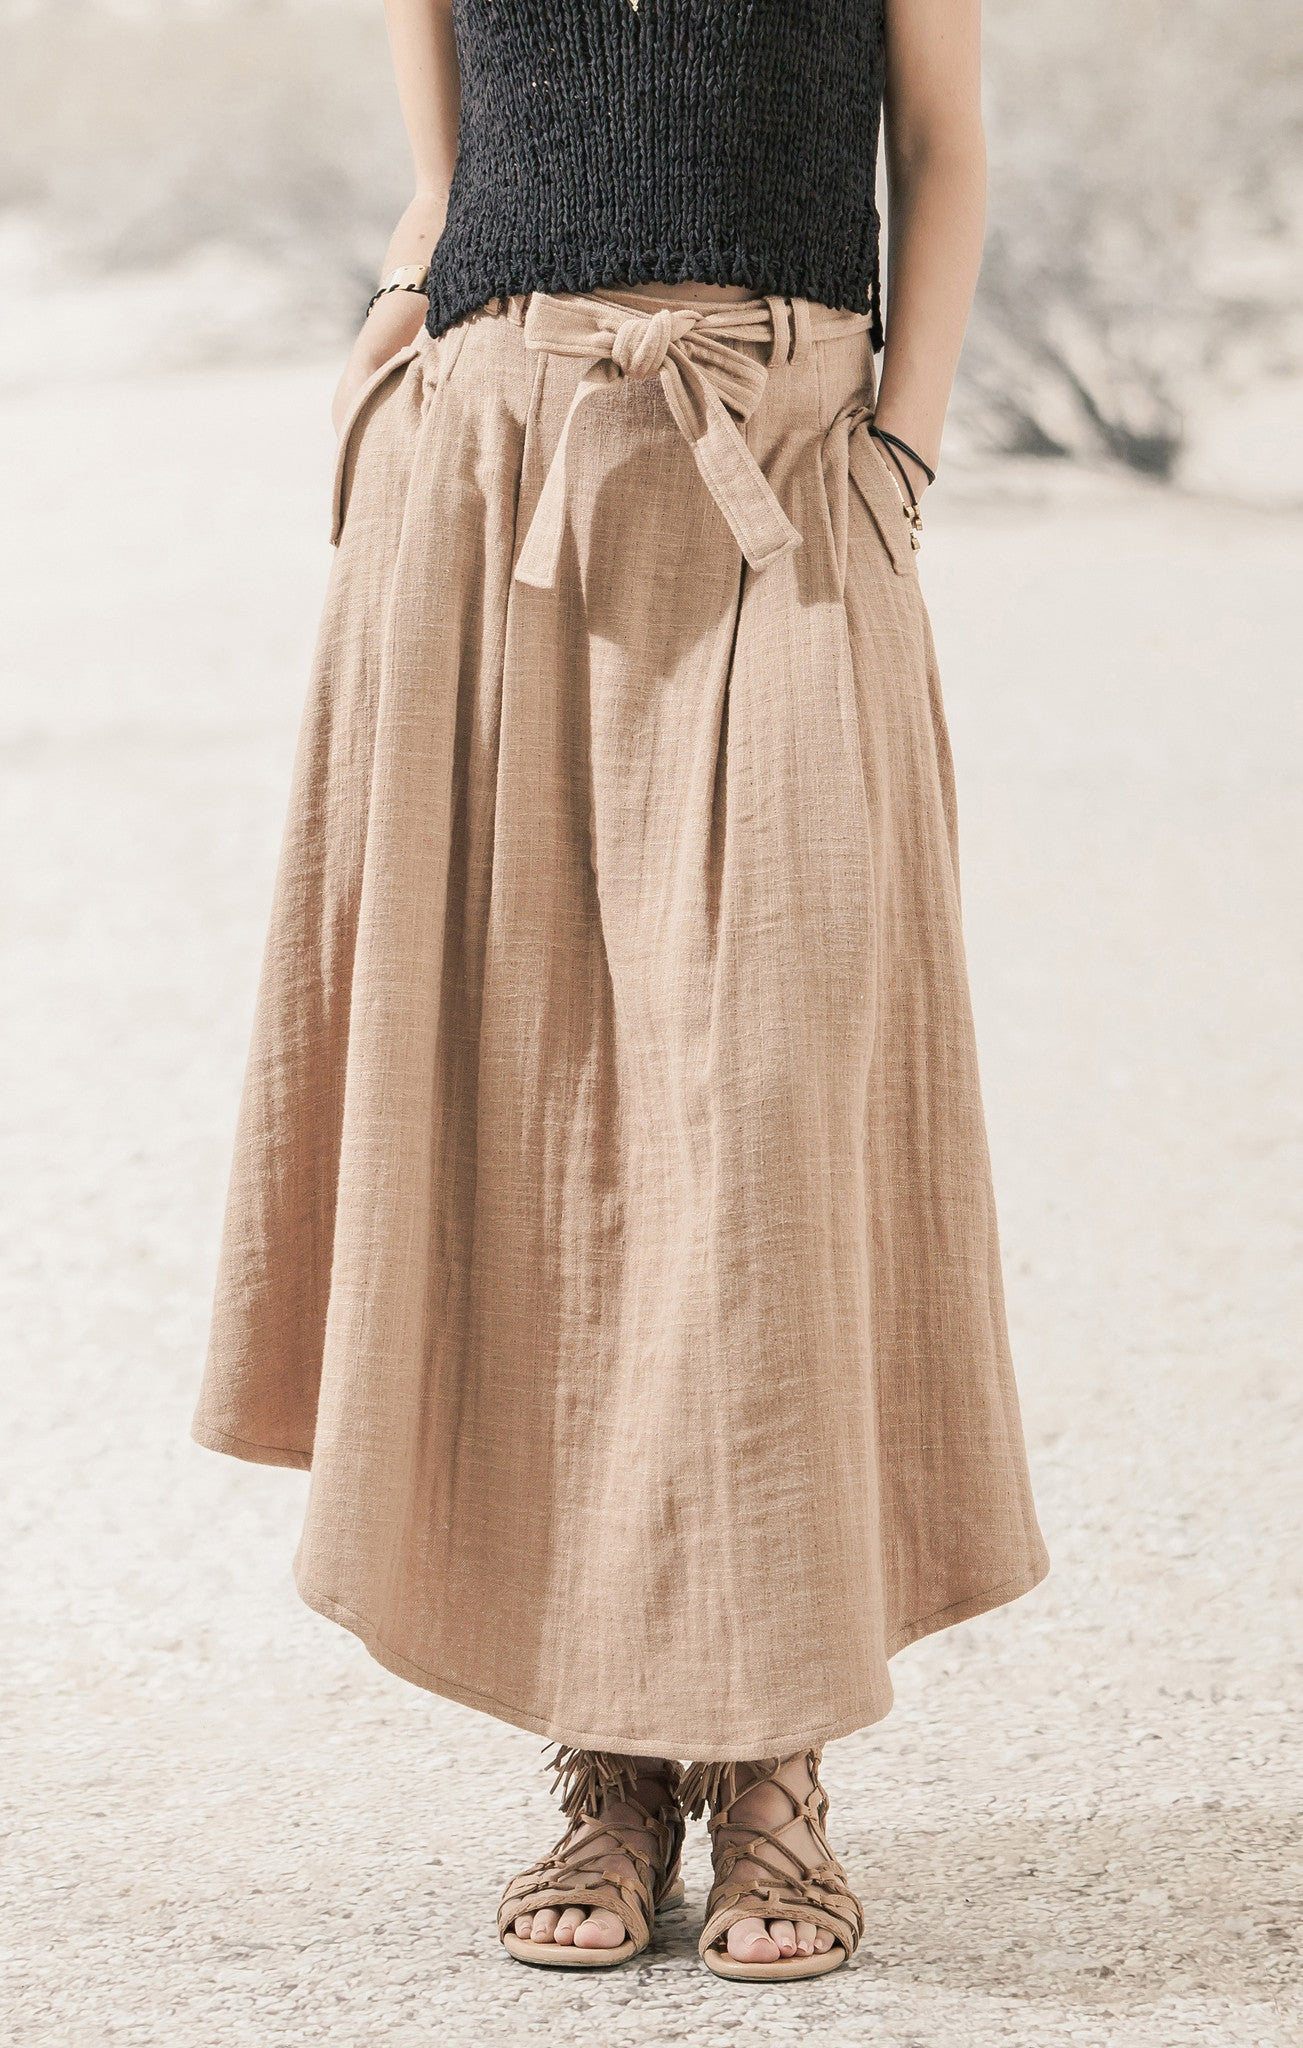 TAN BELTED LINEN SKIRT